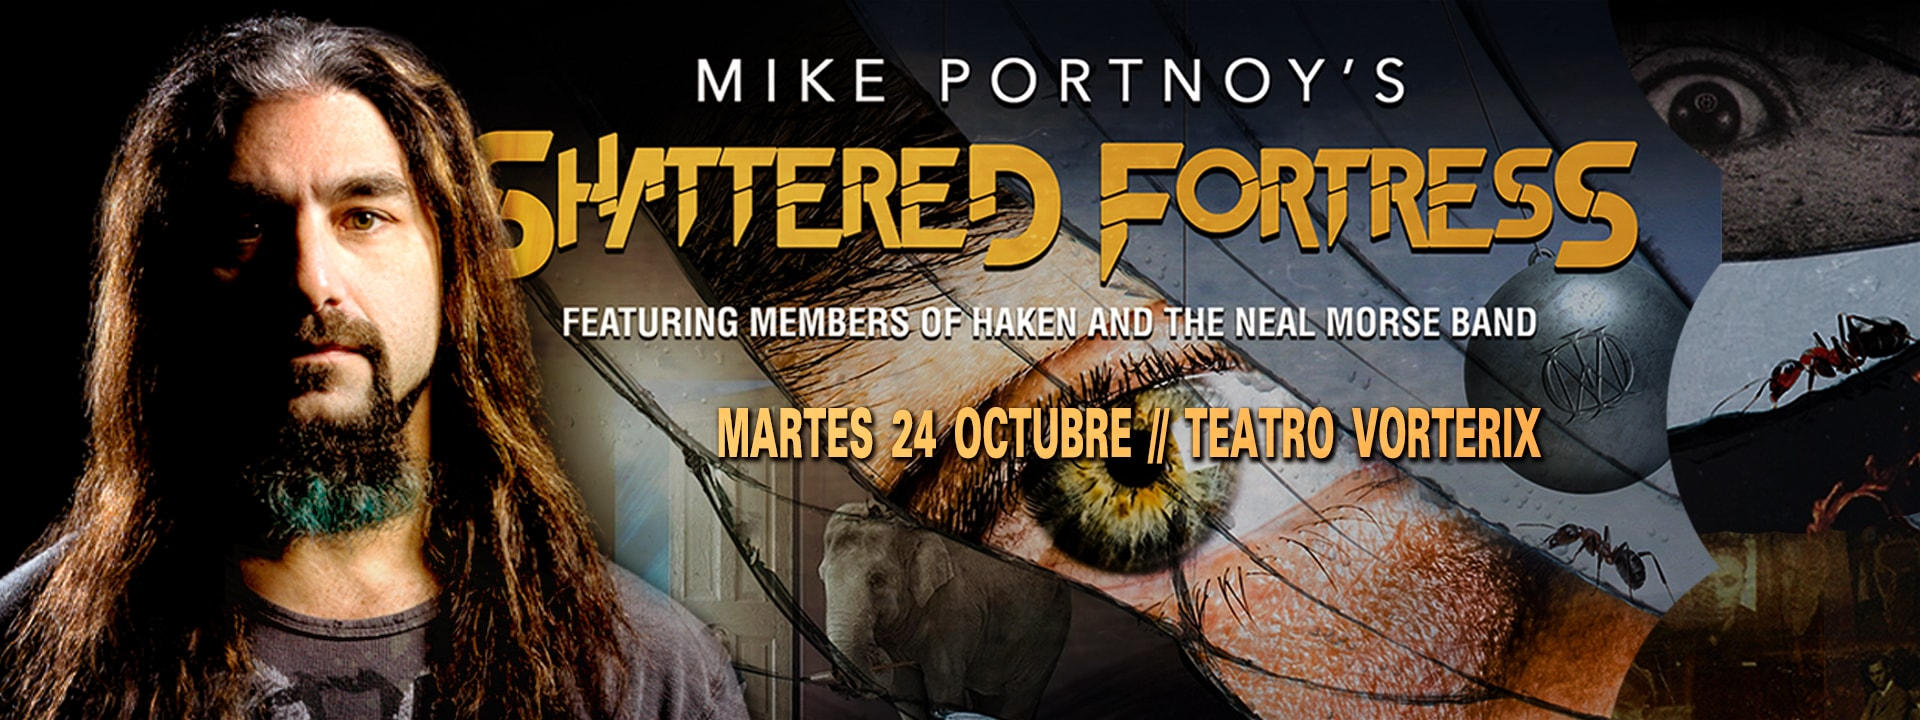 1497550269343-test-pos-mike-portnoy--1920X720-min